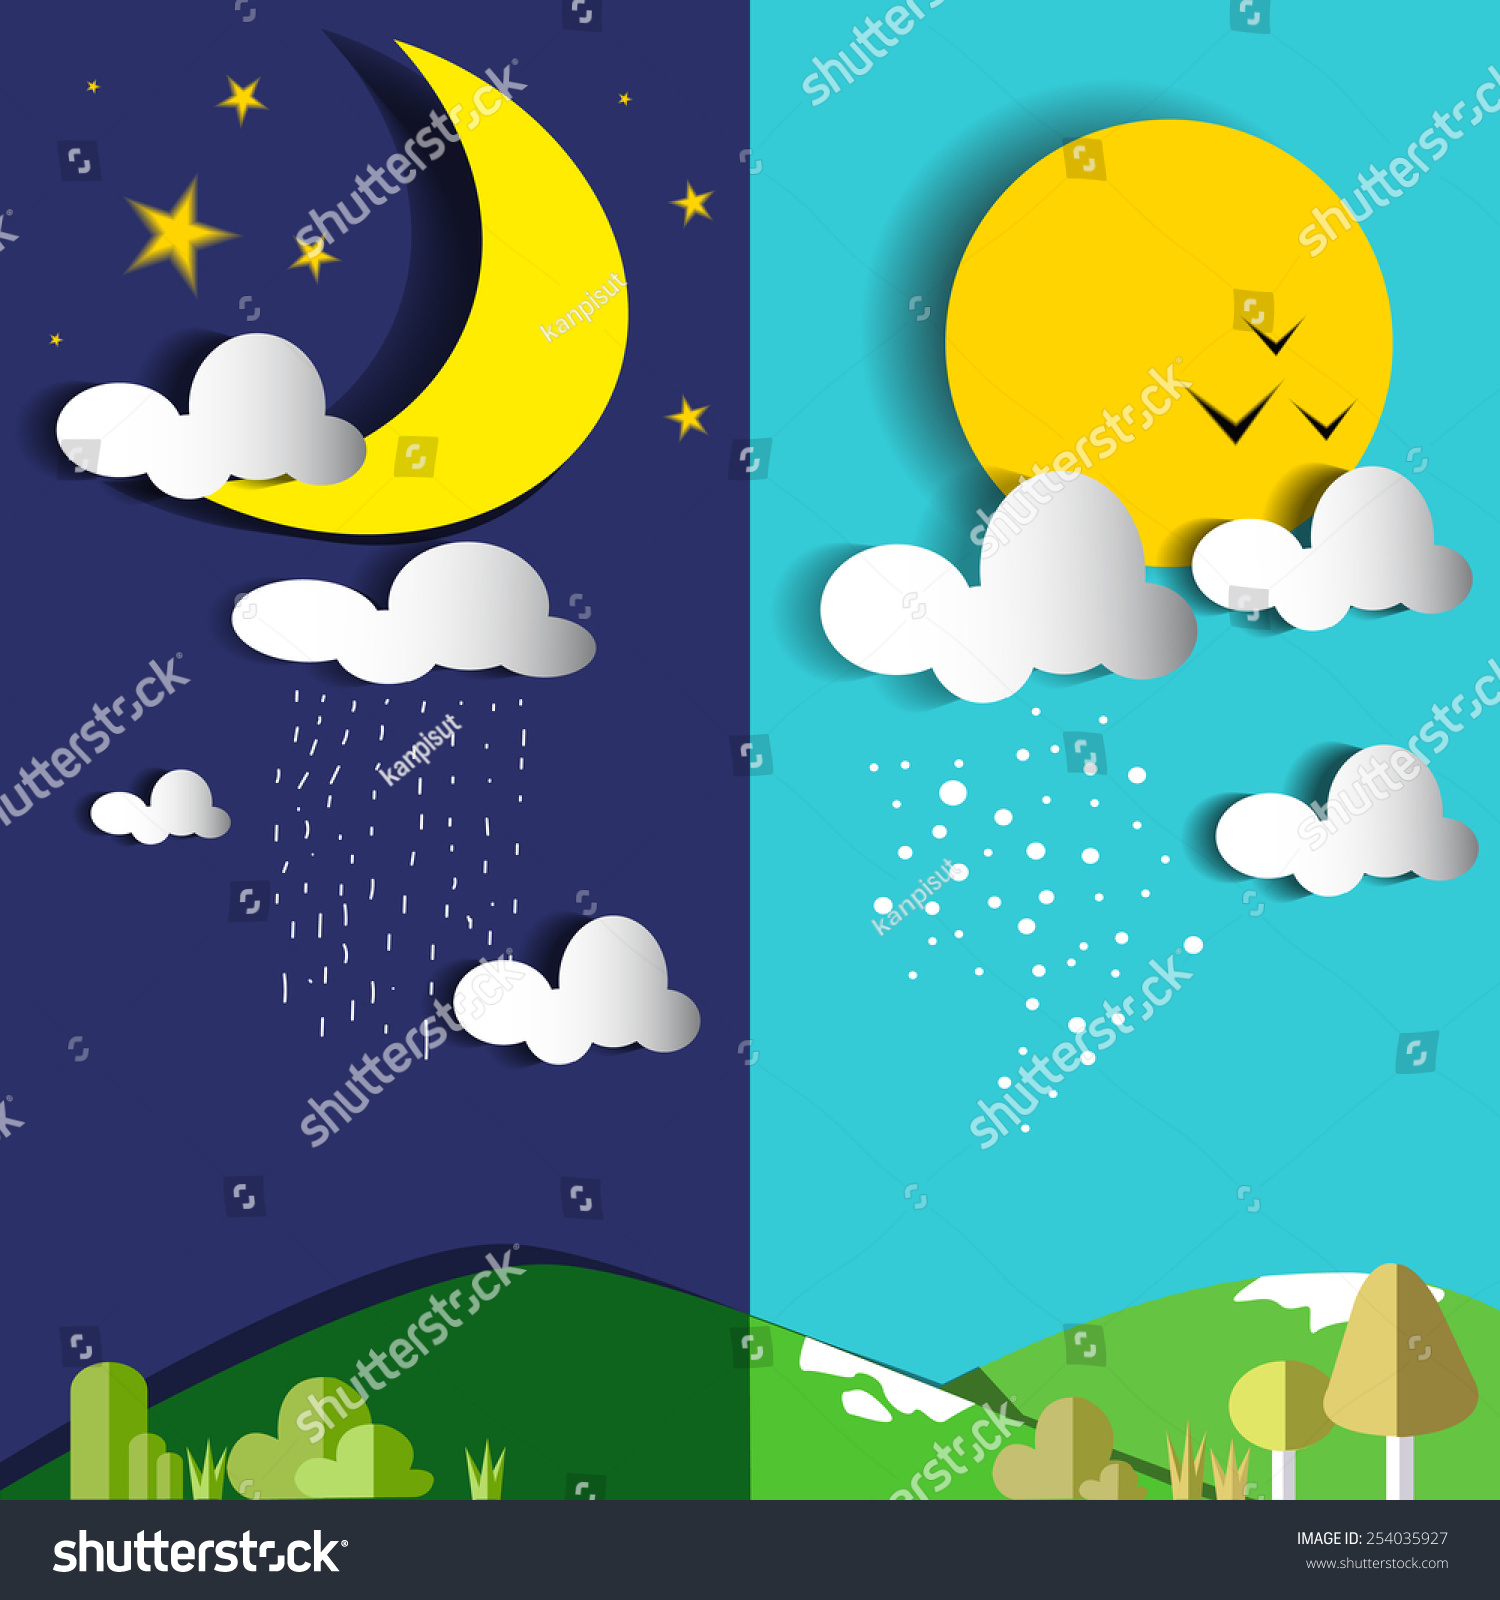 Day Night Sun Moon Vector Illustrationflat Stock Vector